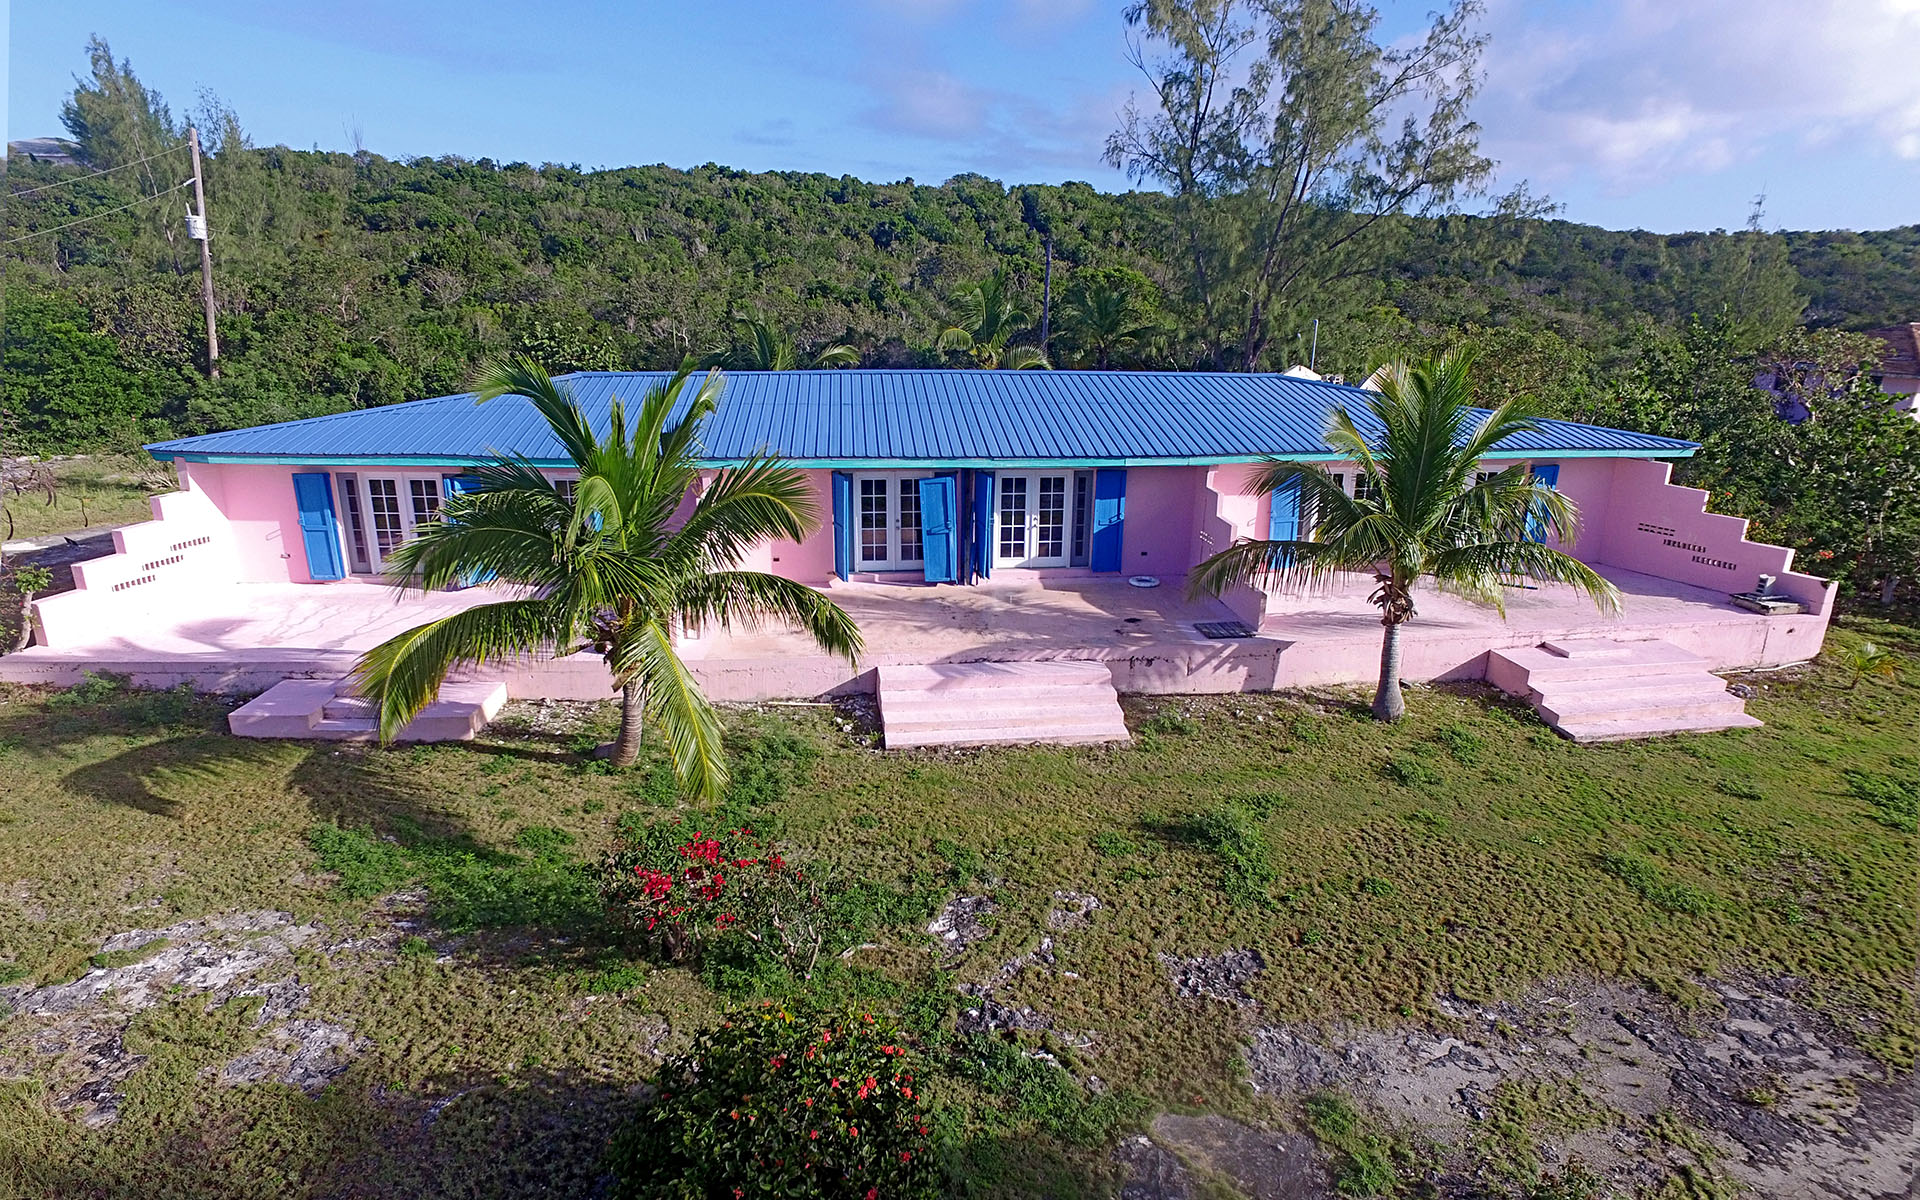 Single Family Home for Sale at Rental Investment Triplex With Deeded Beach Access in Eleuthera Bahamas. / MLS 29302 James Cistern, Eleuthera, Bahamas